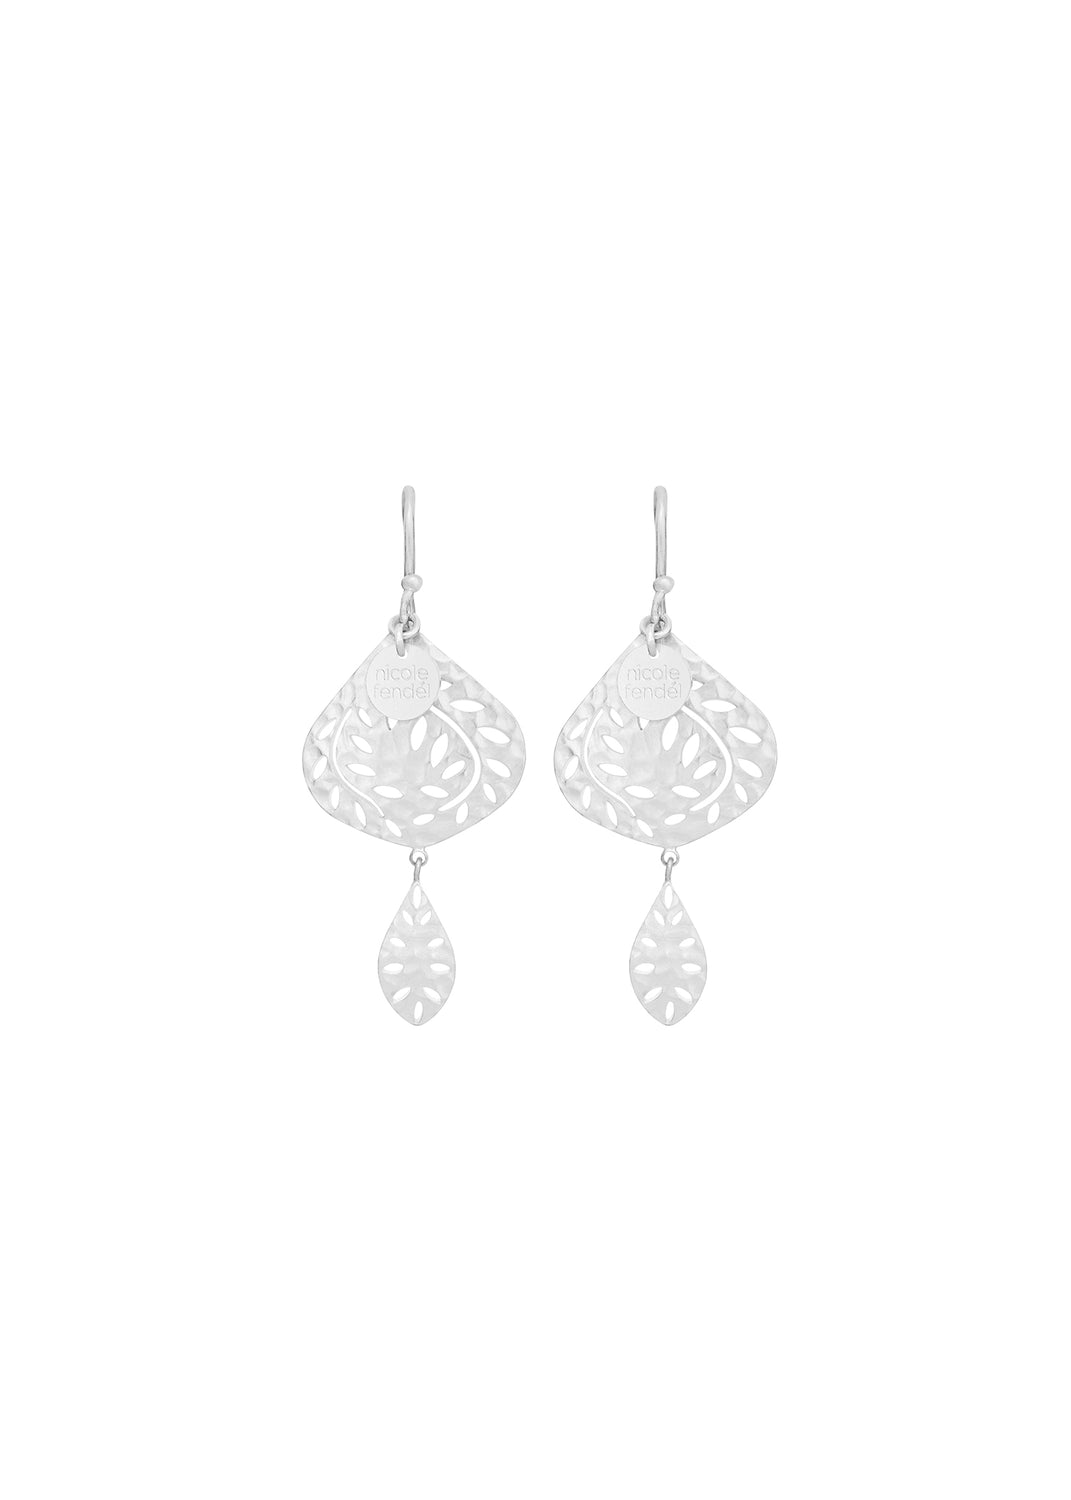 Nicole Fendel Dakota Drop Earrings - The Artisan Storeroom